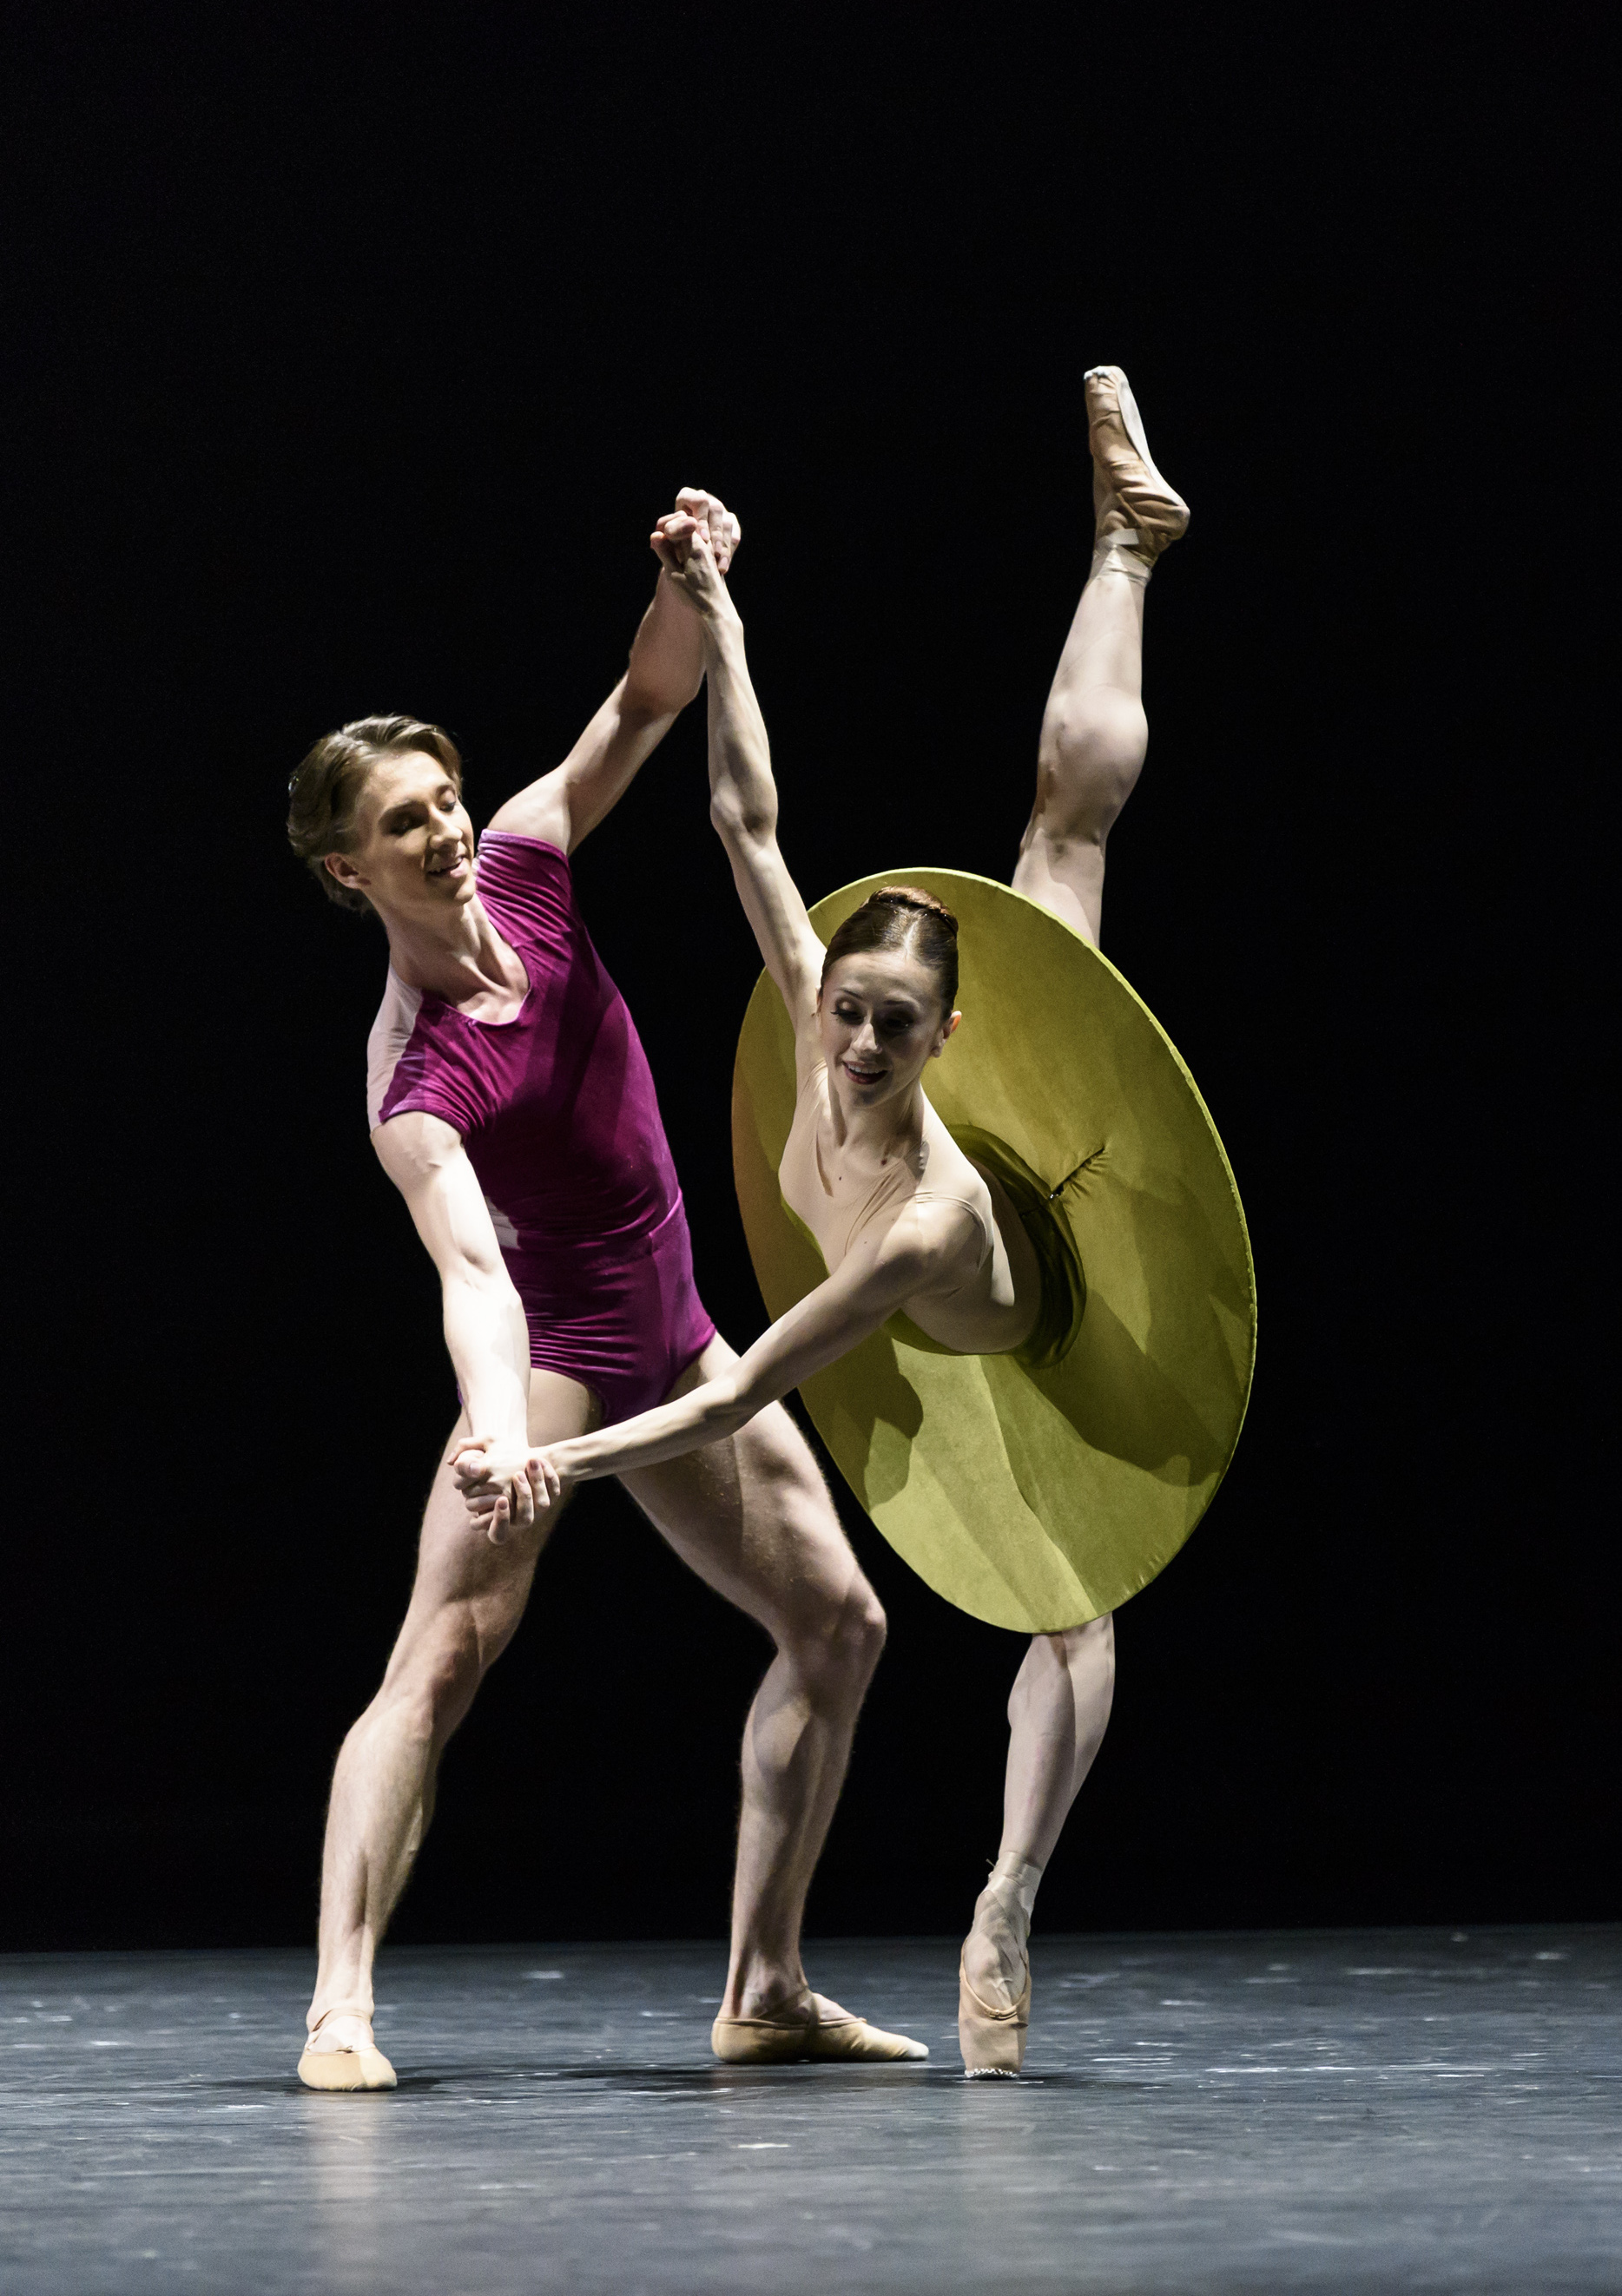 Vadim Muntagirov and Marianela Nuñez in William Forsythe's The Vertiginous Thrill of Exactitude. Photo by Bill Cooper.